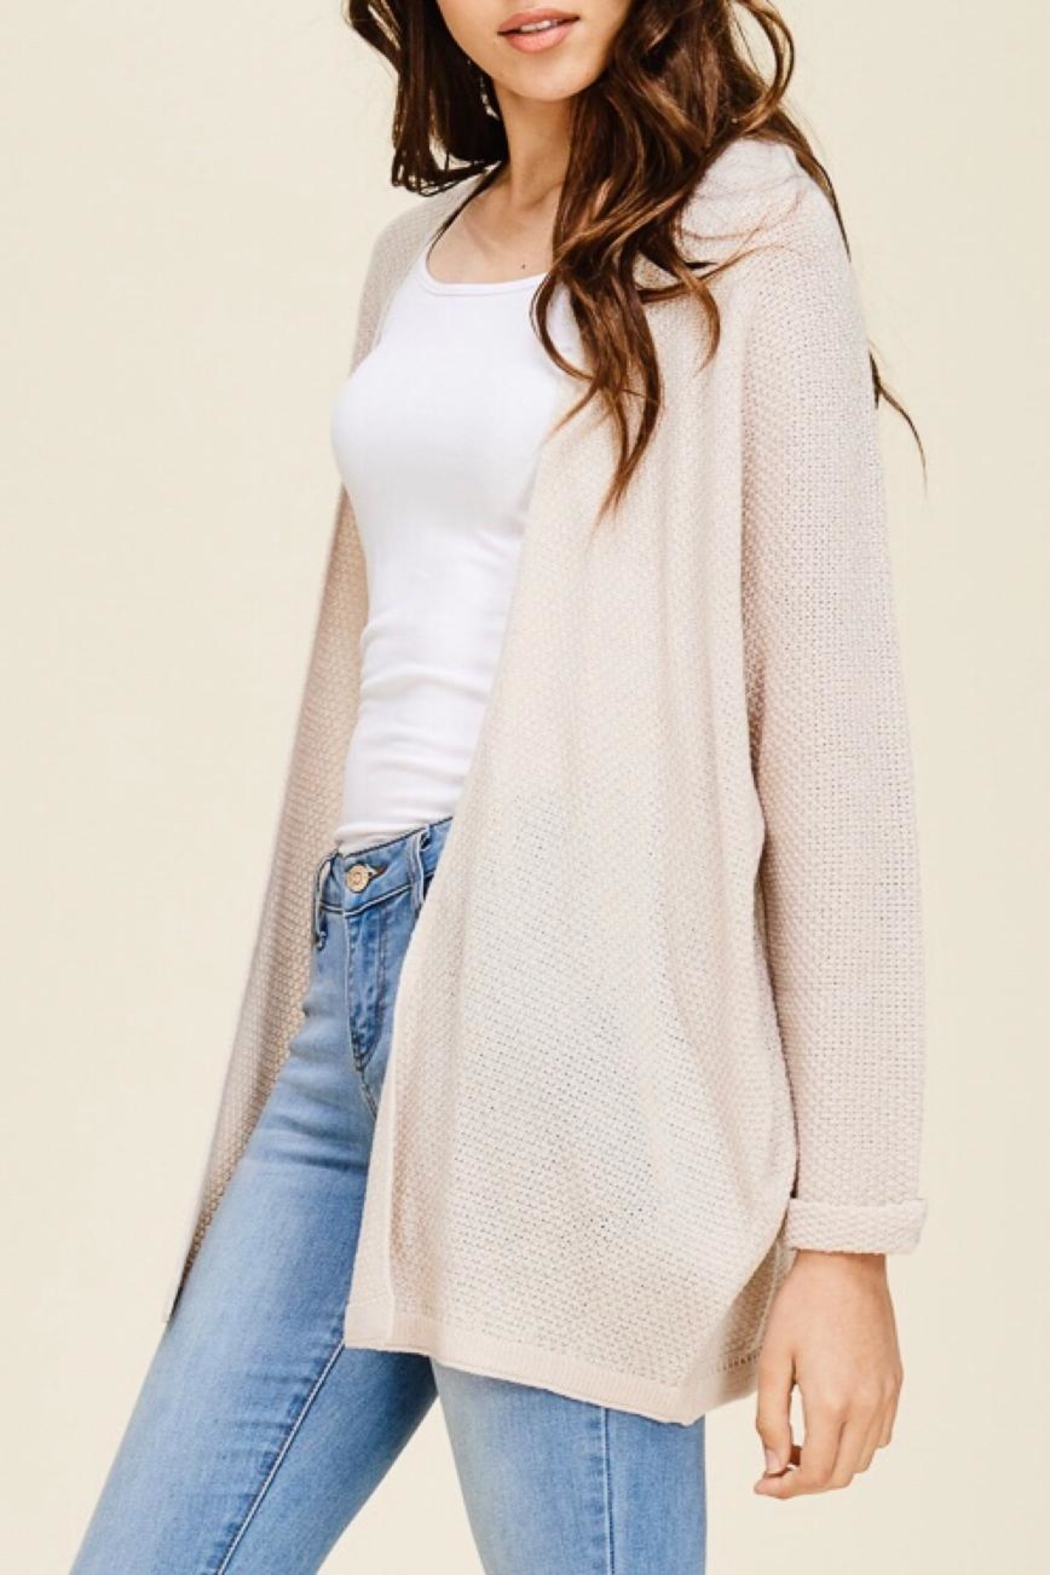 LuLu's Boutique Dolman Sleeve Cardigan - Front Full Image